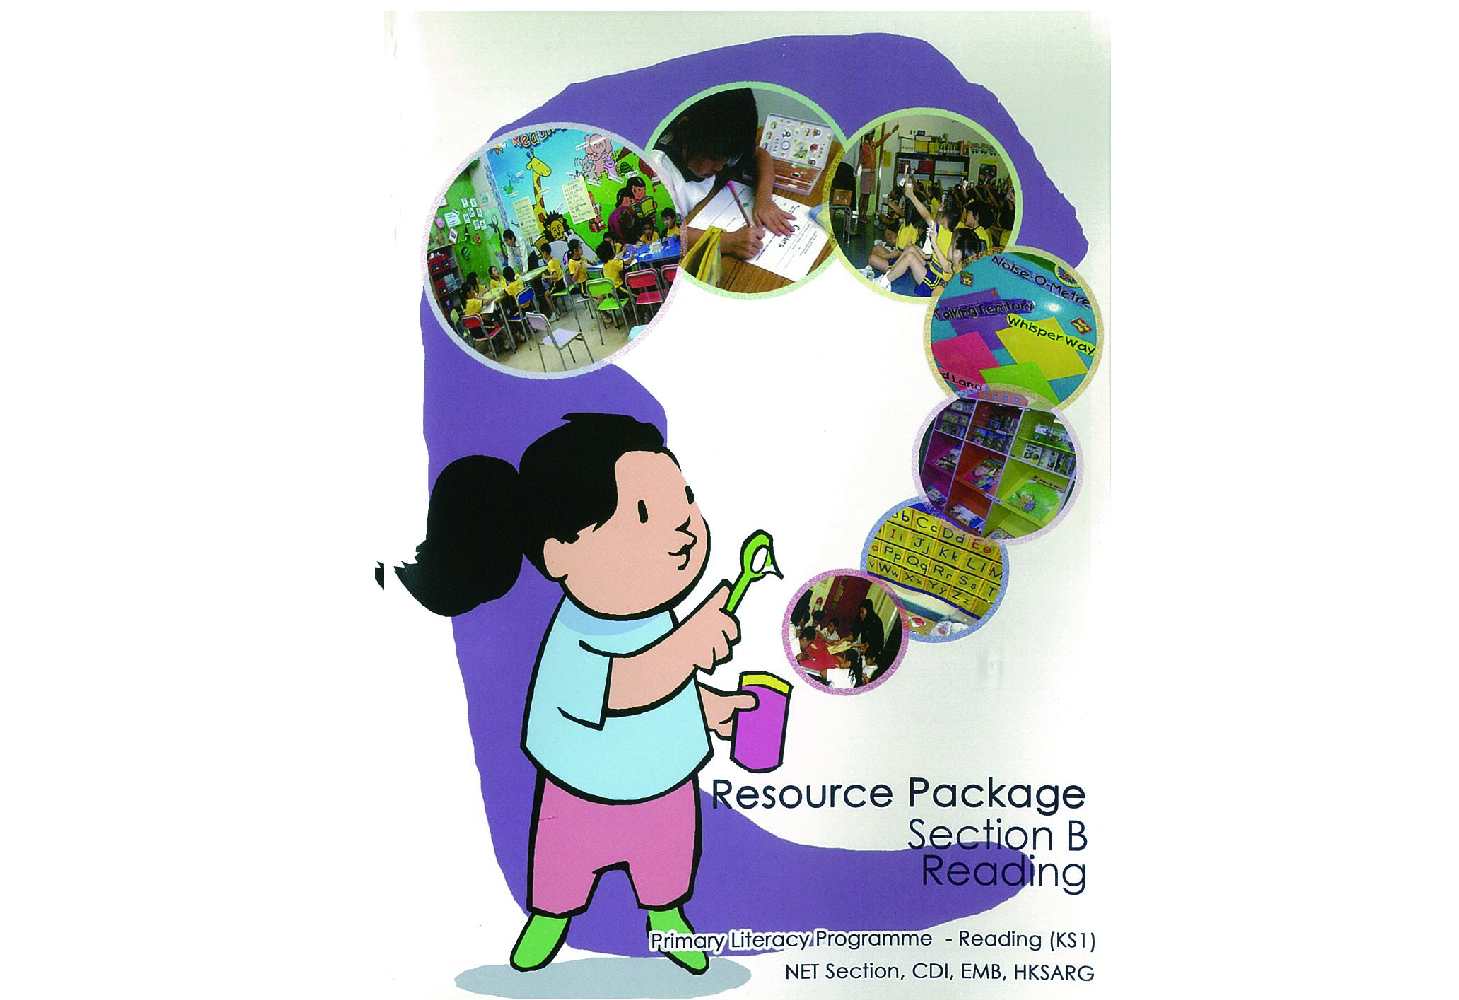 Resource Package Section B Reading